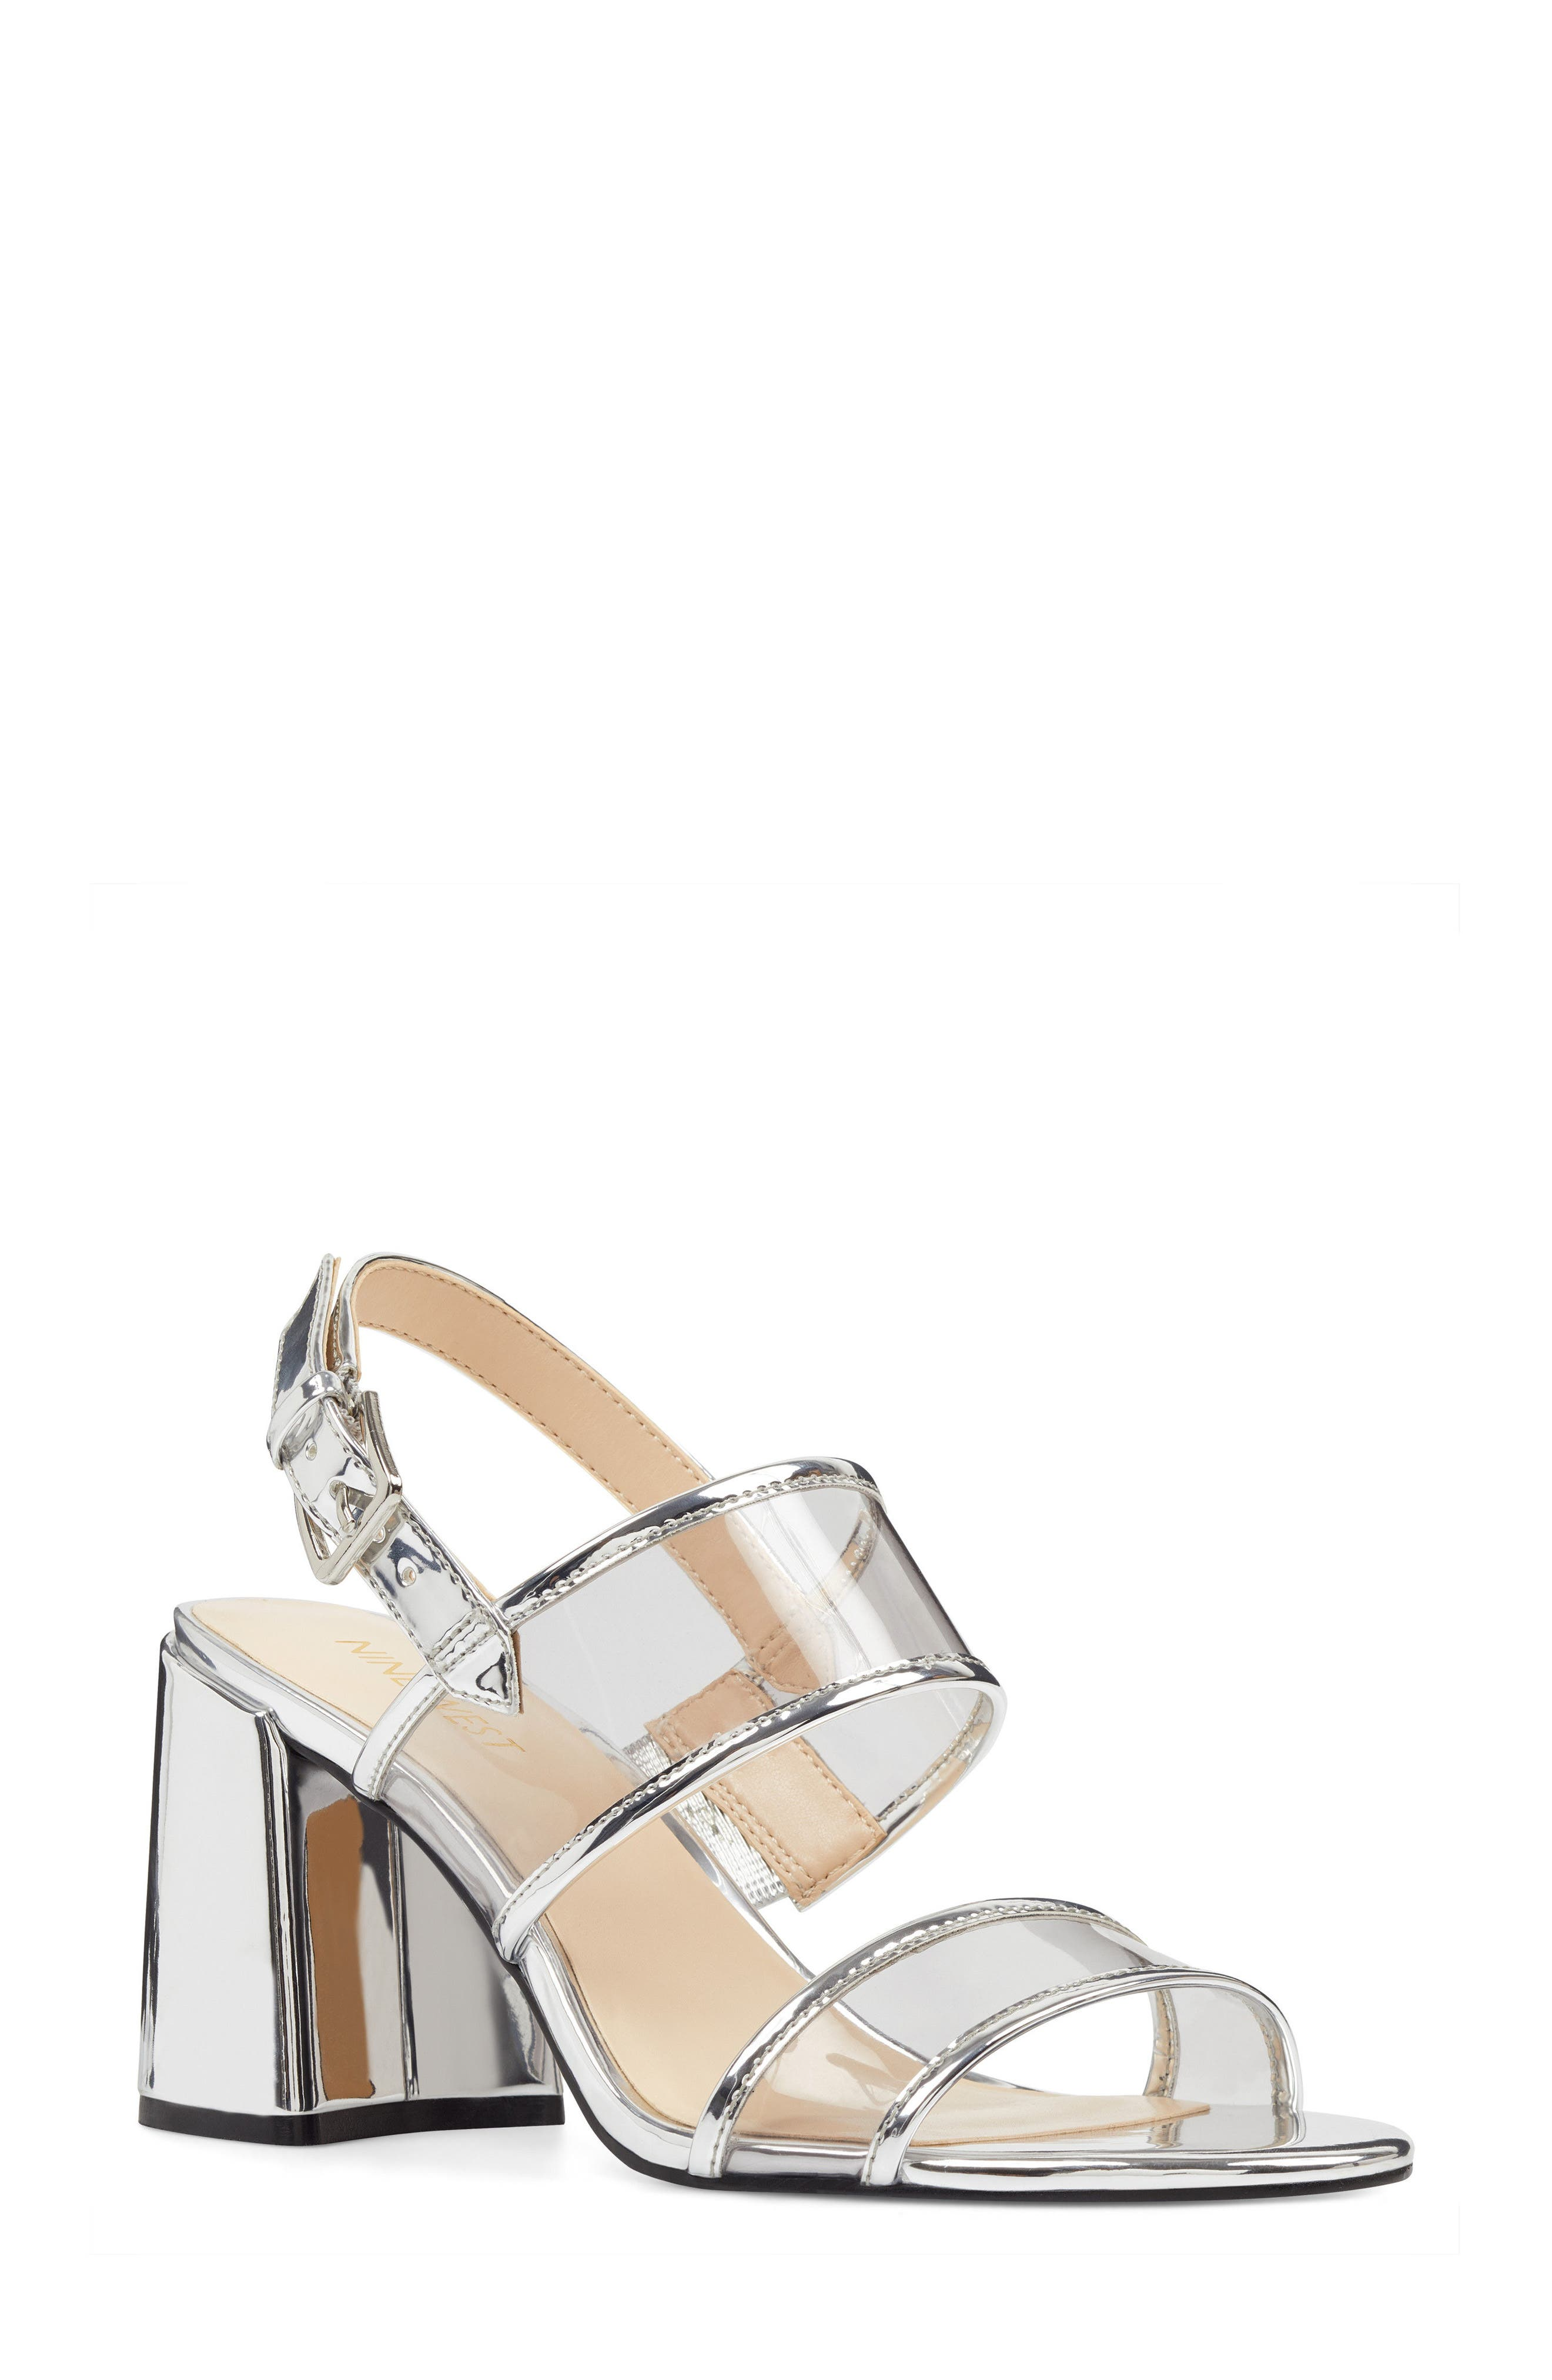 Gourdes Block Heel Sandal,                         Main,                         color, Clear Grey Multi Faux Leather